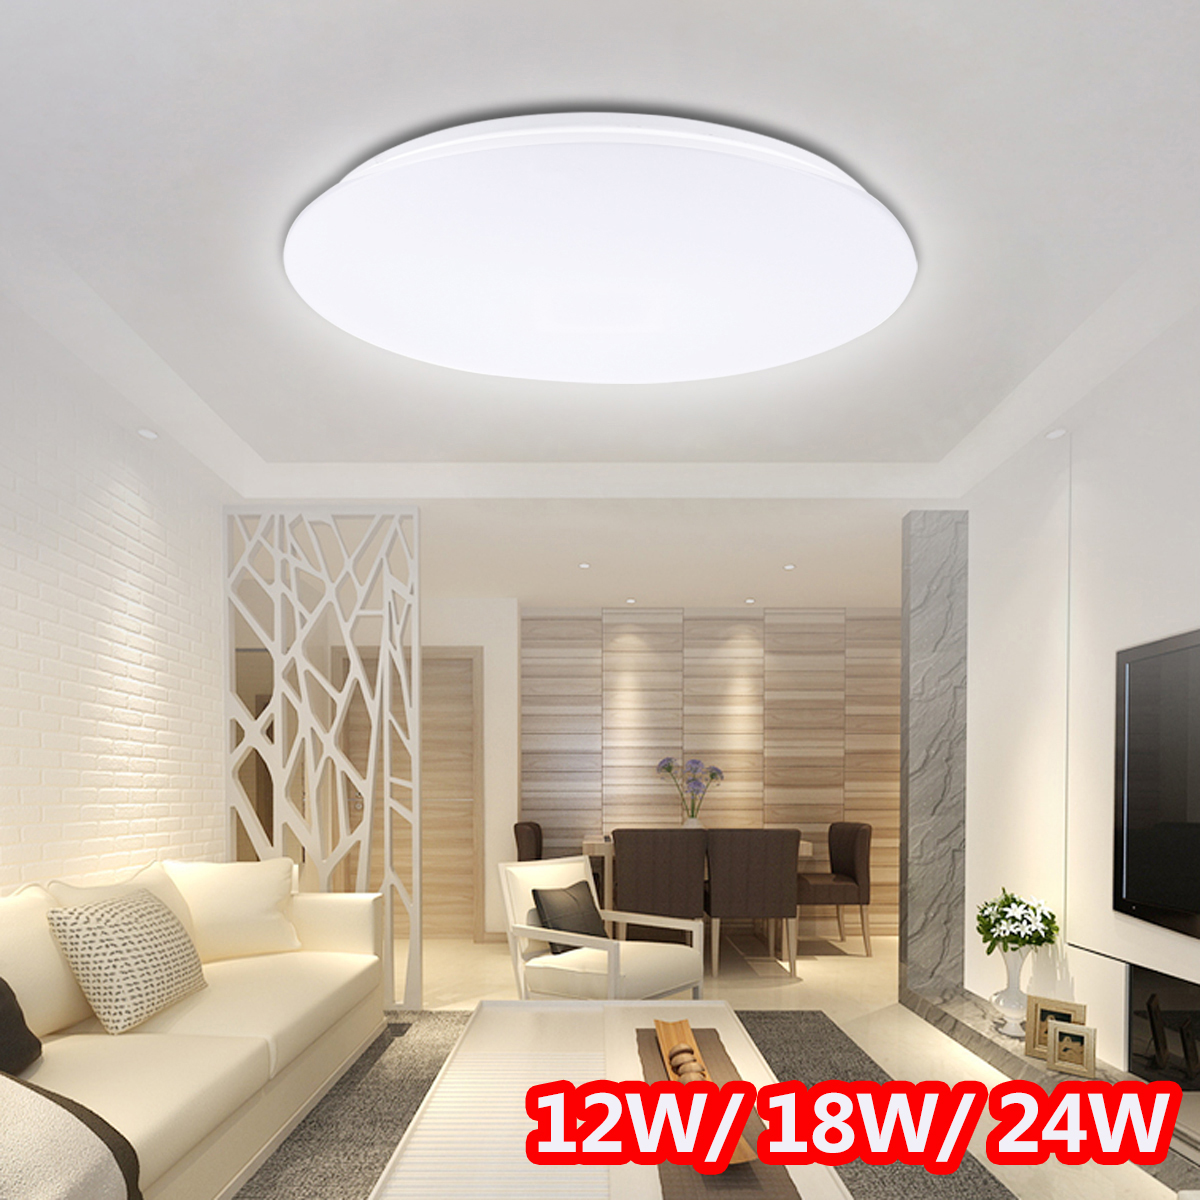 12/18/24W Modern Round Led Ceiling lights for Living Room Bedroom Decor 5cm Thin Ceiling lamp Surface Mounted Lighting